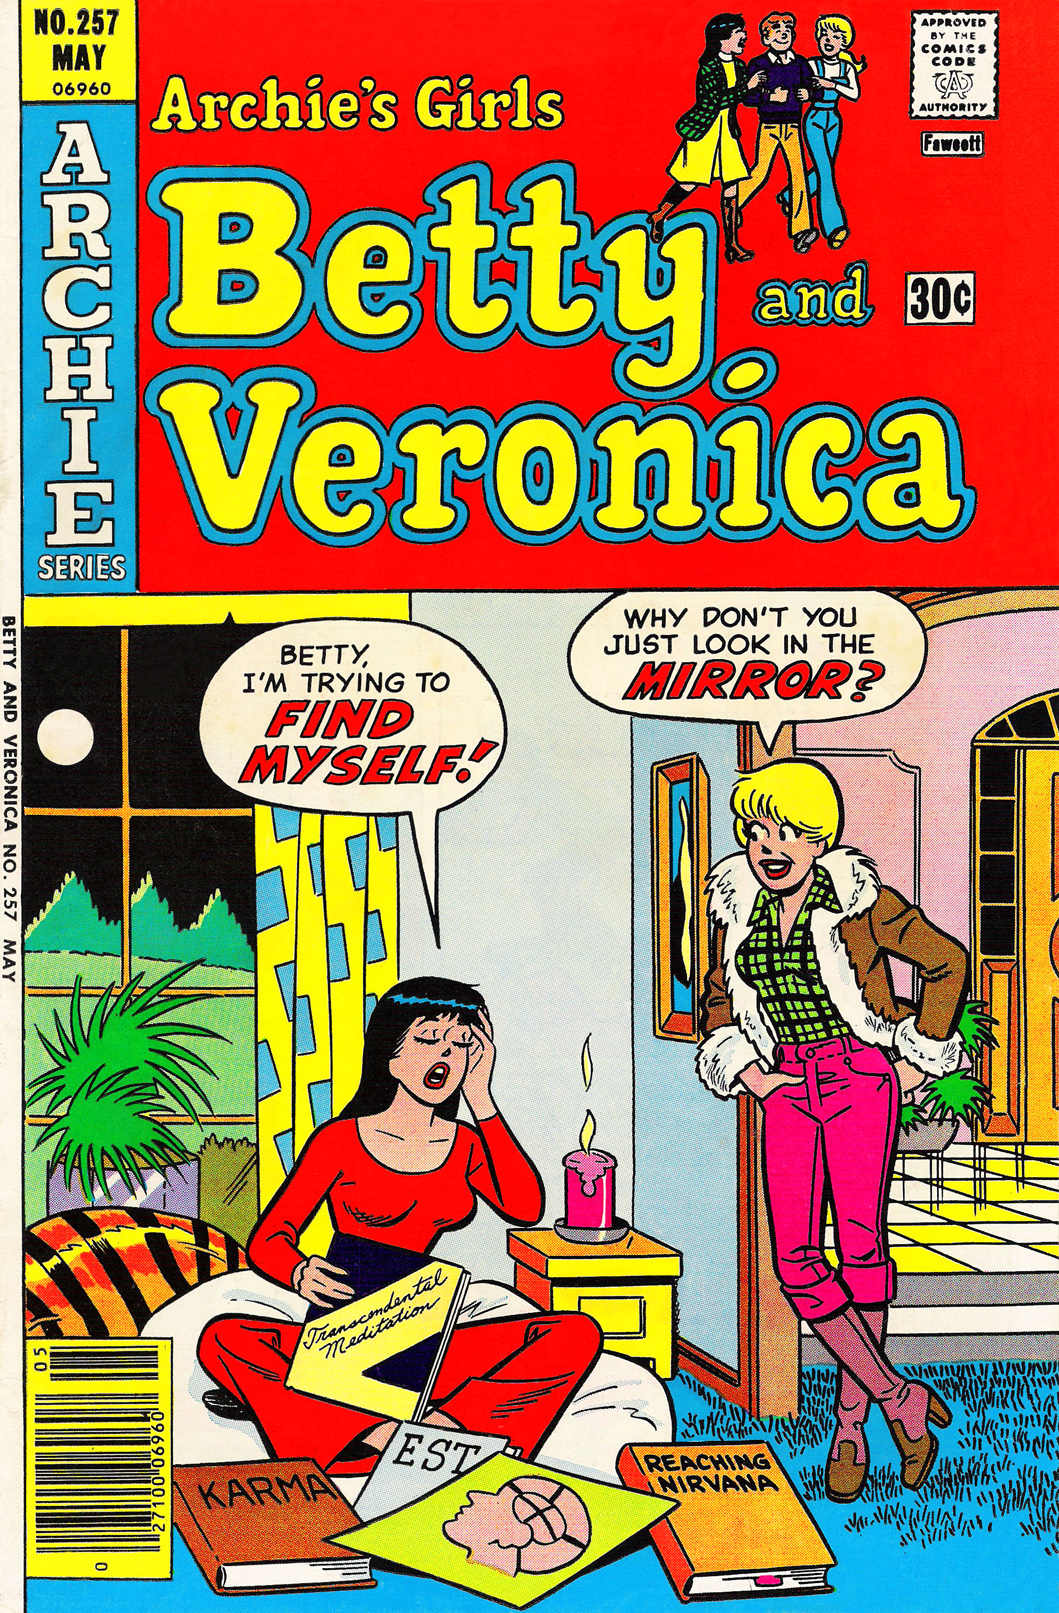 Read online Archie's Girls Betty and Veronica comic -  Issue #257 - 1